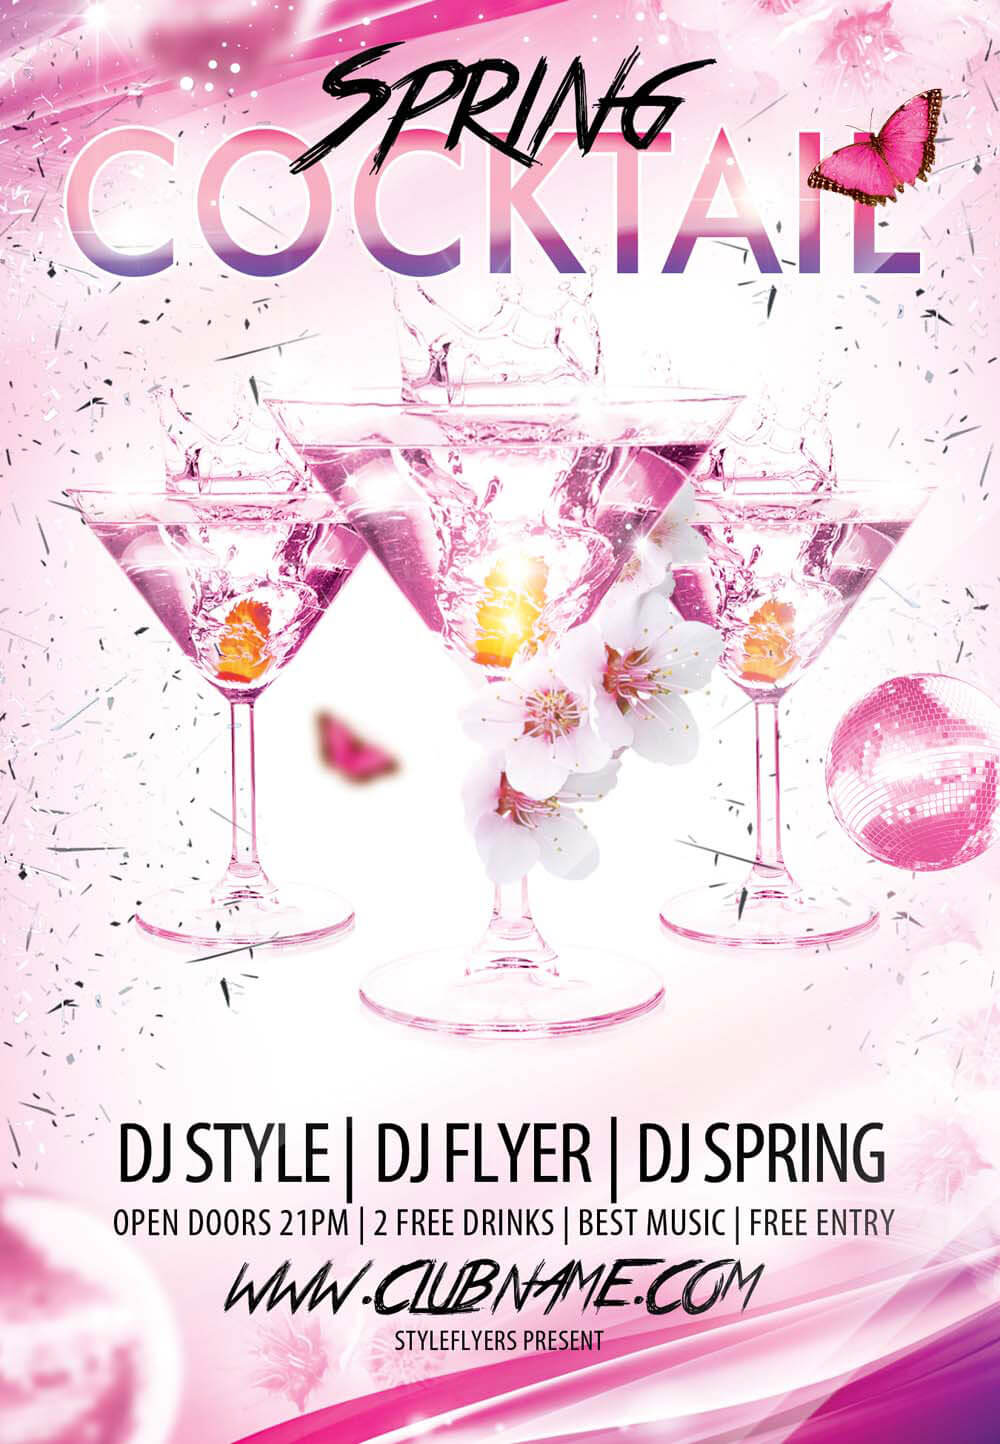 new party season psd flyer templates graphicsfuel cocktail spring psd flyer template